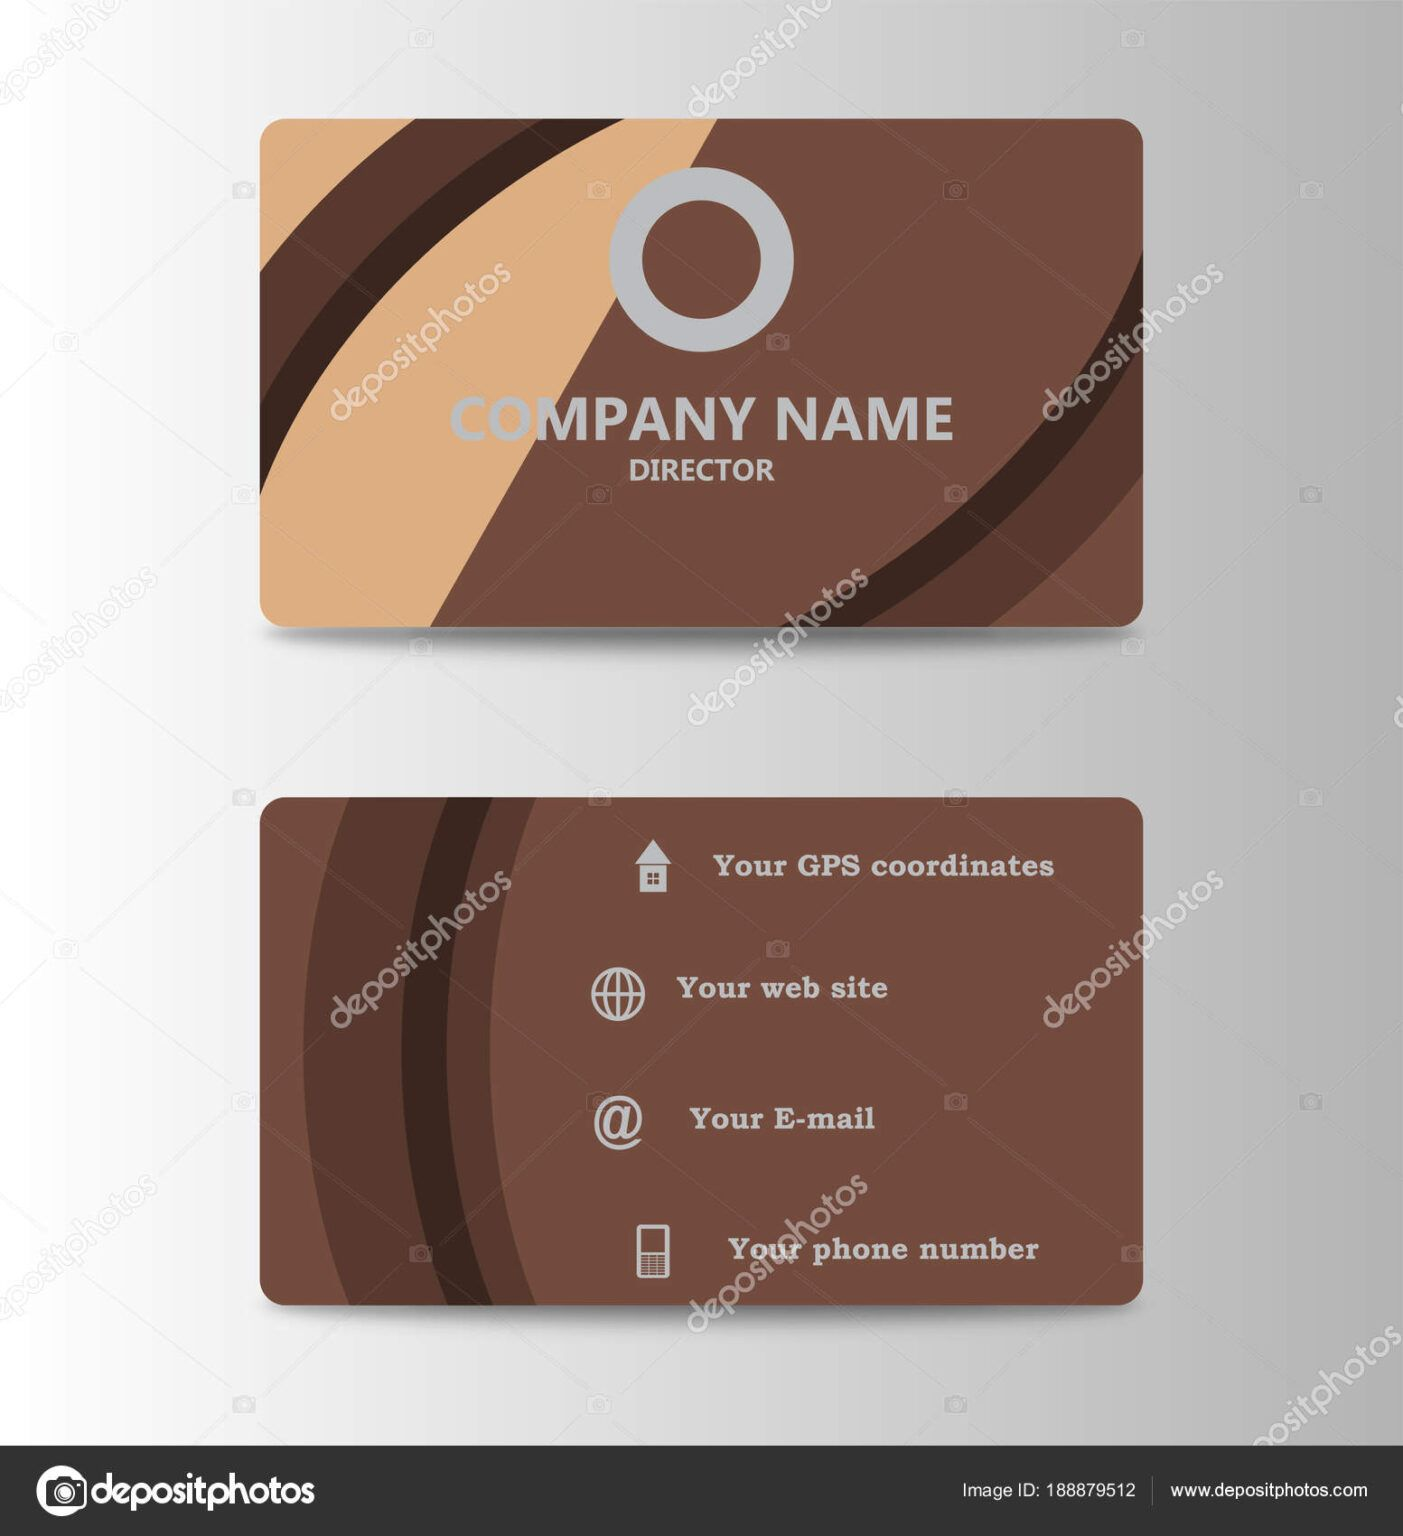 Corporate Id Card Design Template Personal Id Card For Intended For Personal Identification Card Tem In 2020 Free Business Card Templates Corporate Id Design Template